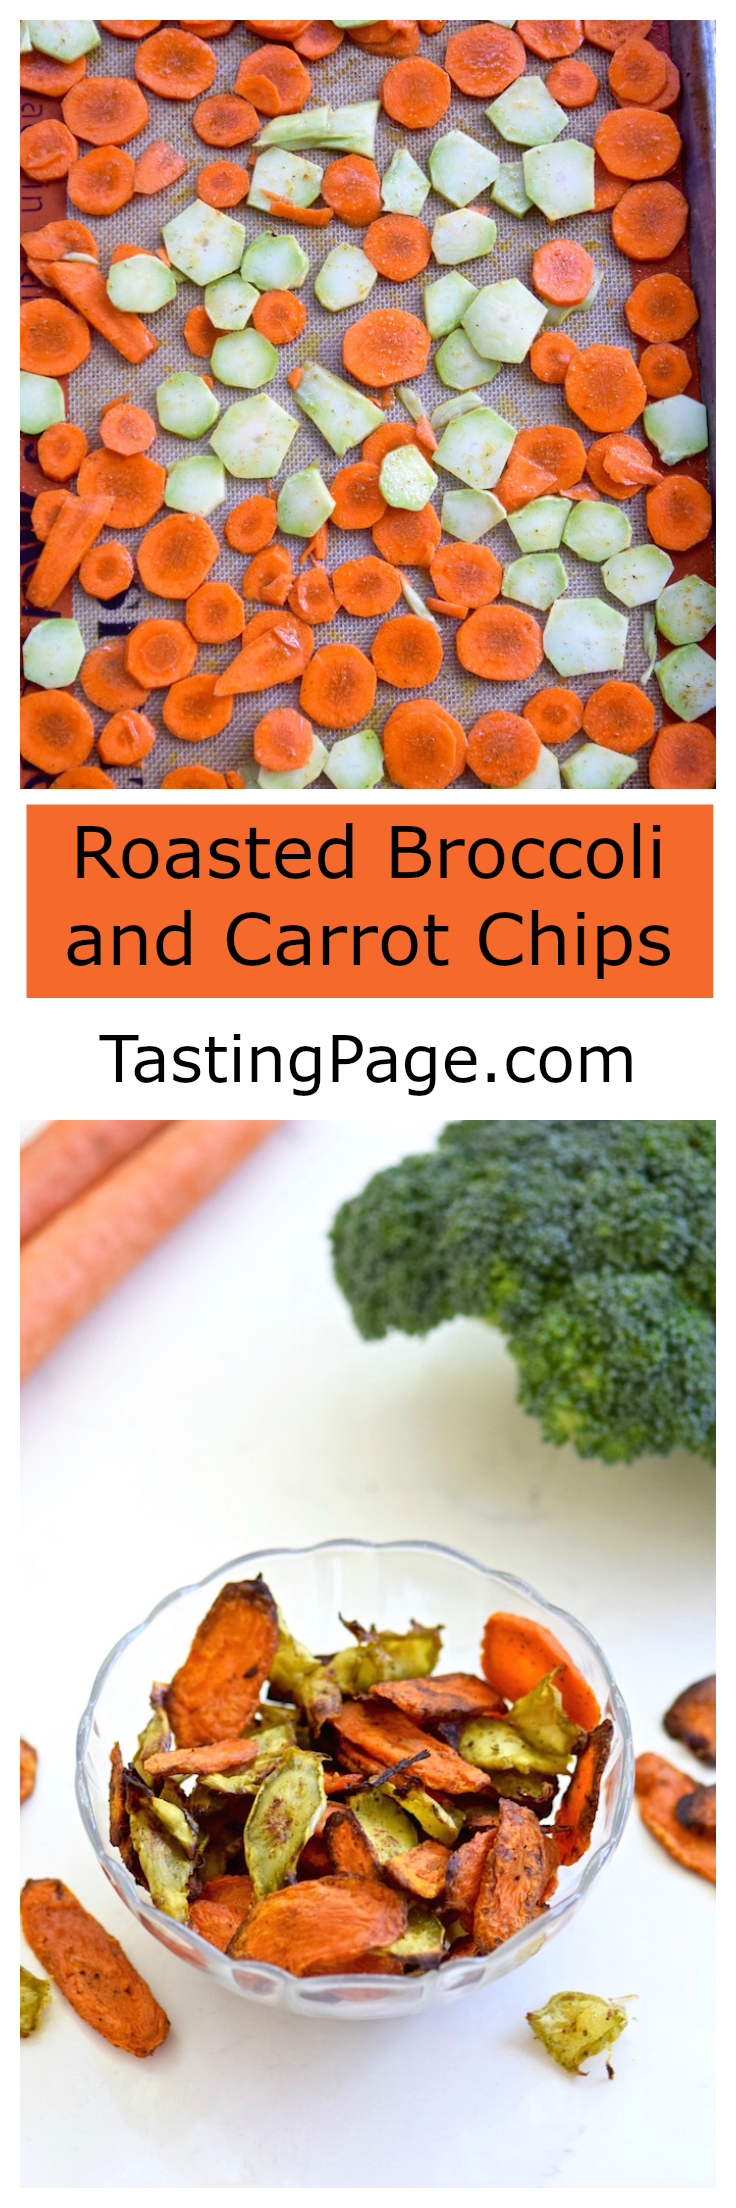 Carrot and Broccoli Chips | TastingPage.com